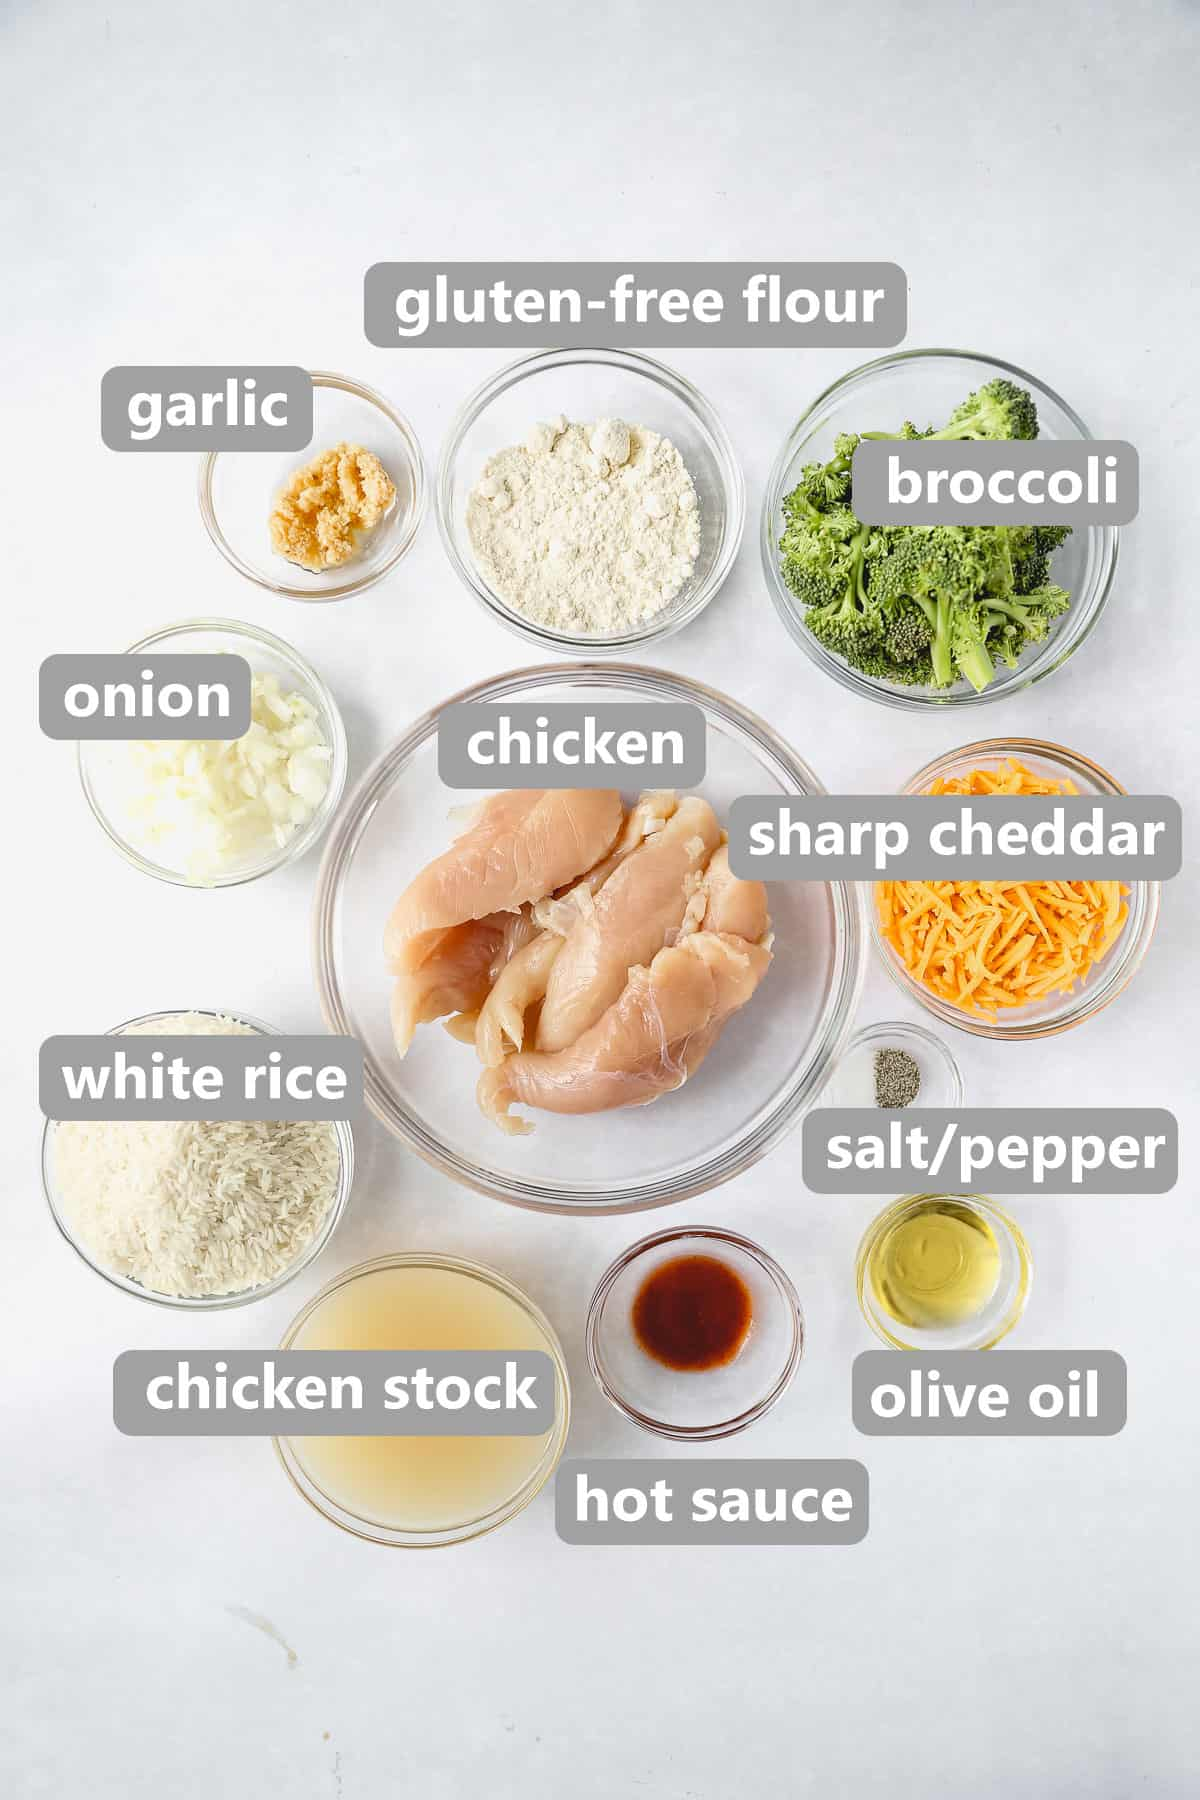 ingredients to make the gluten free chicken and rice labeled in collage